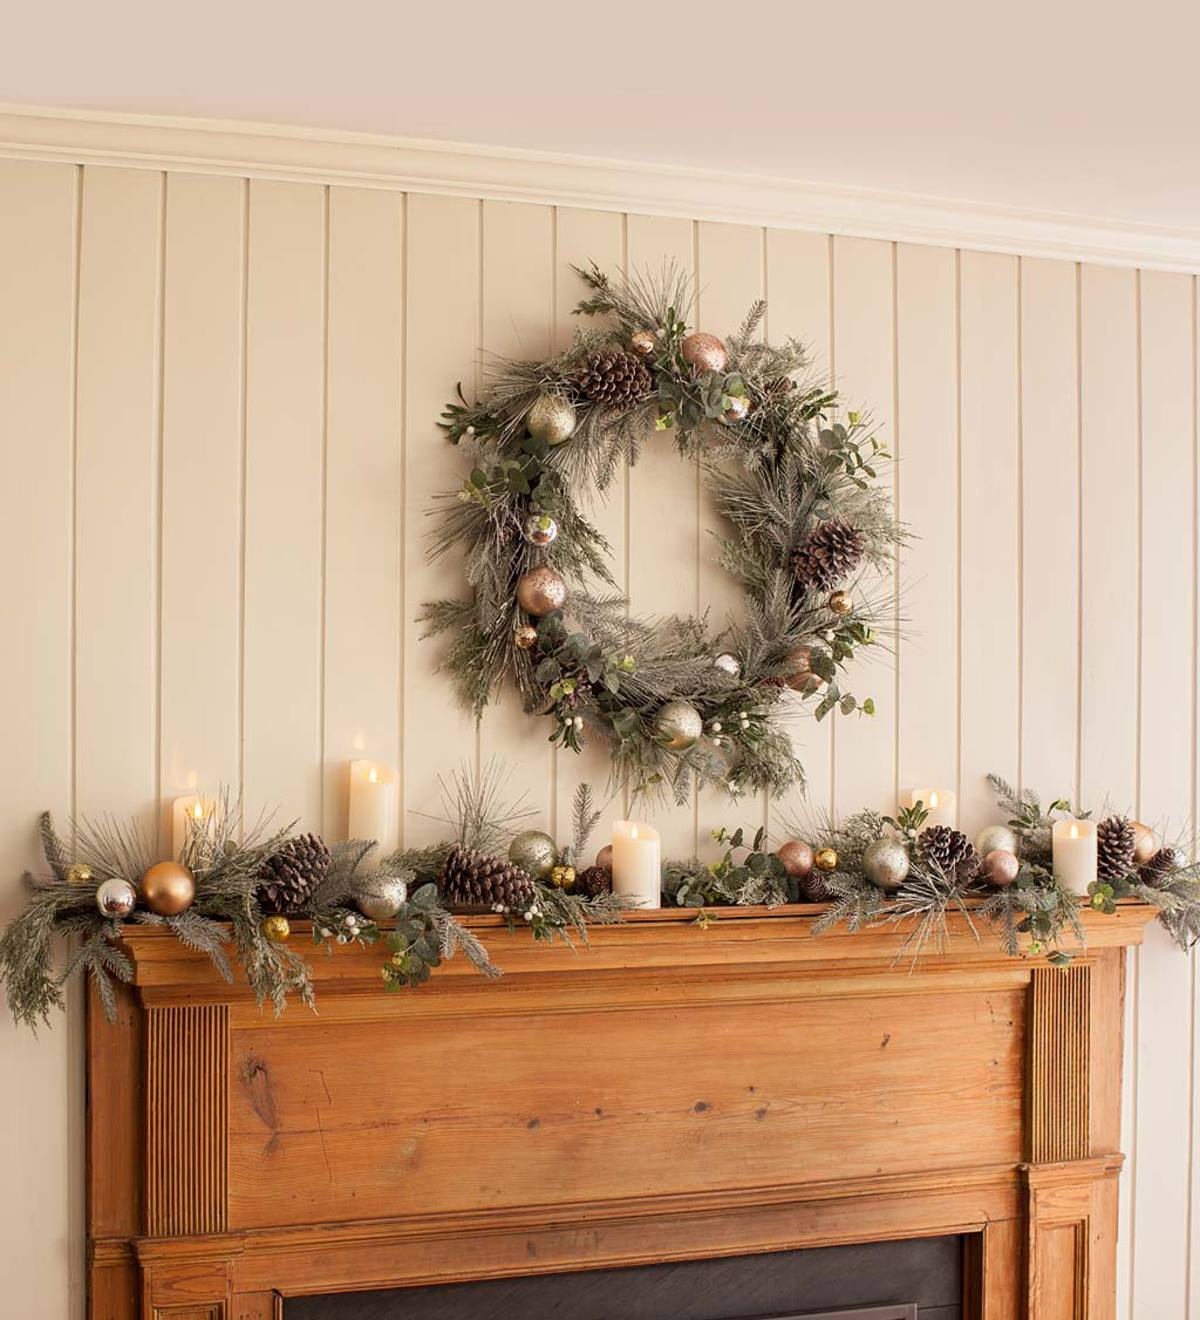 Faux Garland with Ornaments